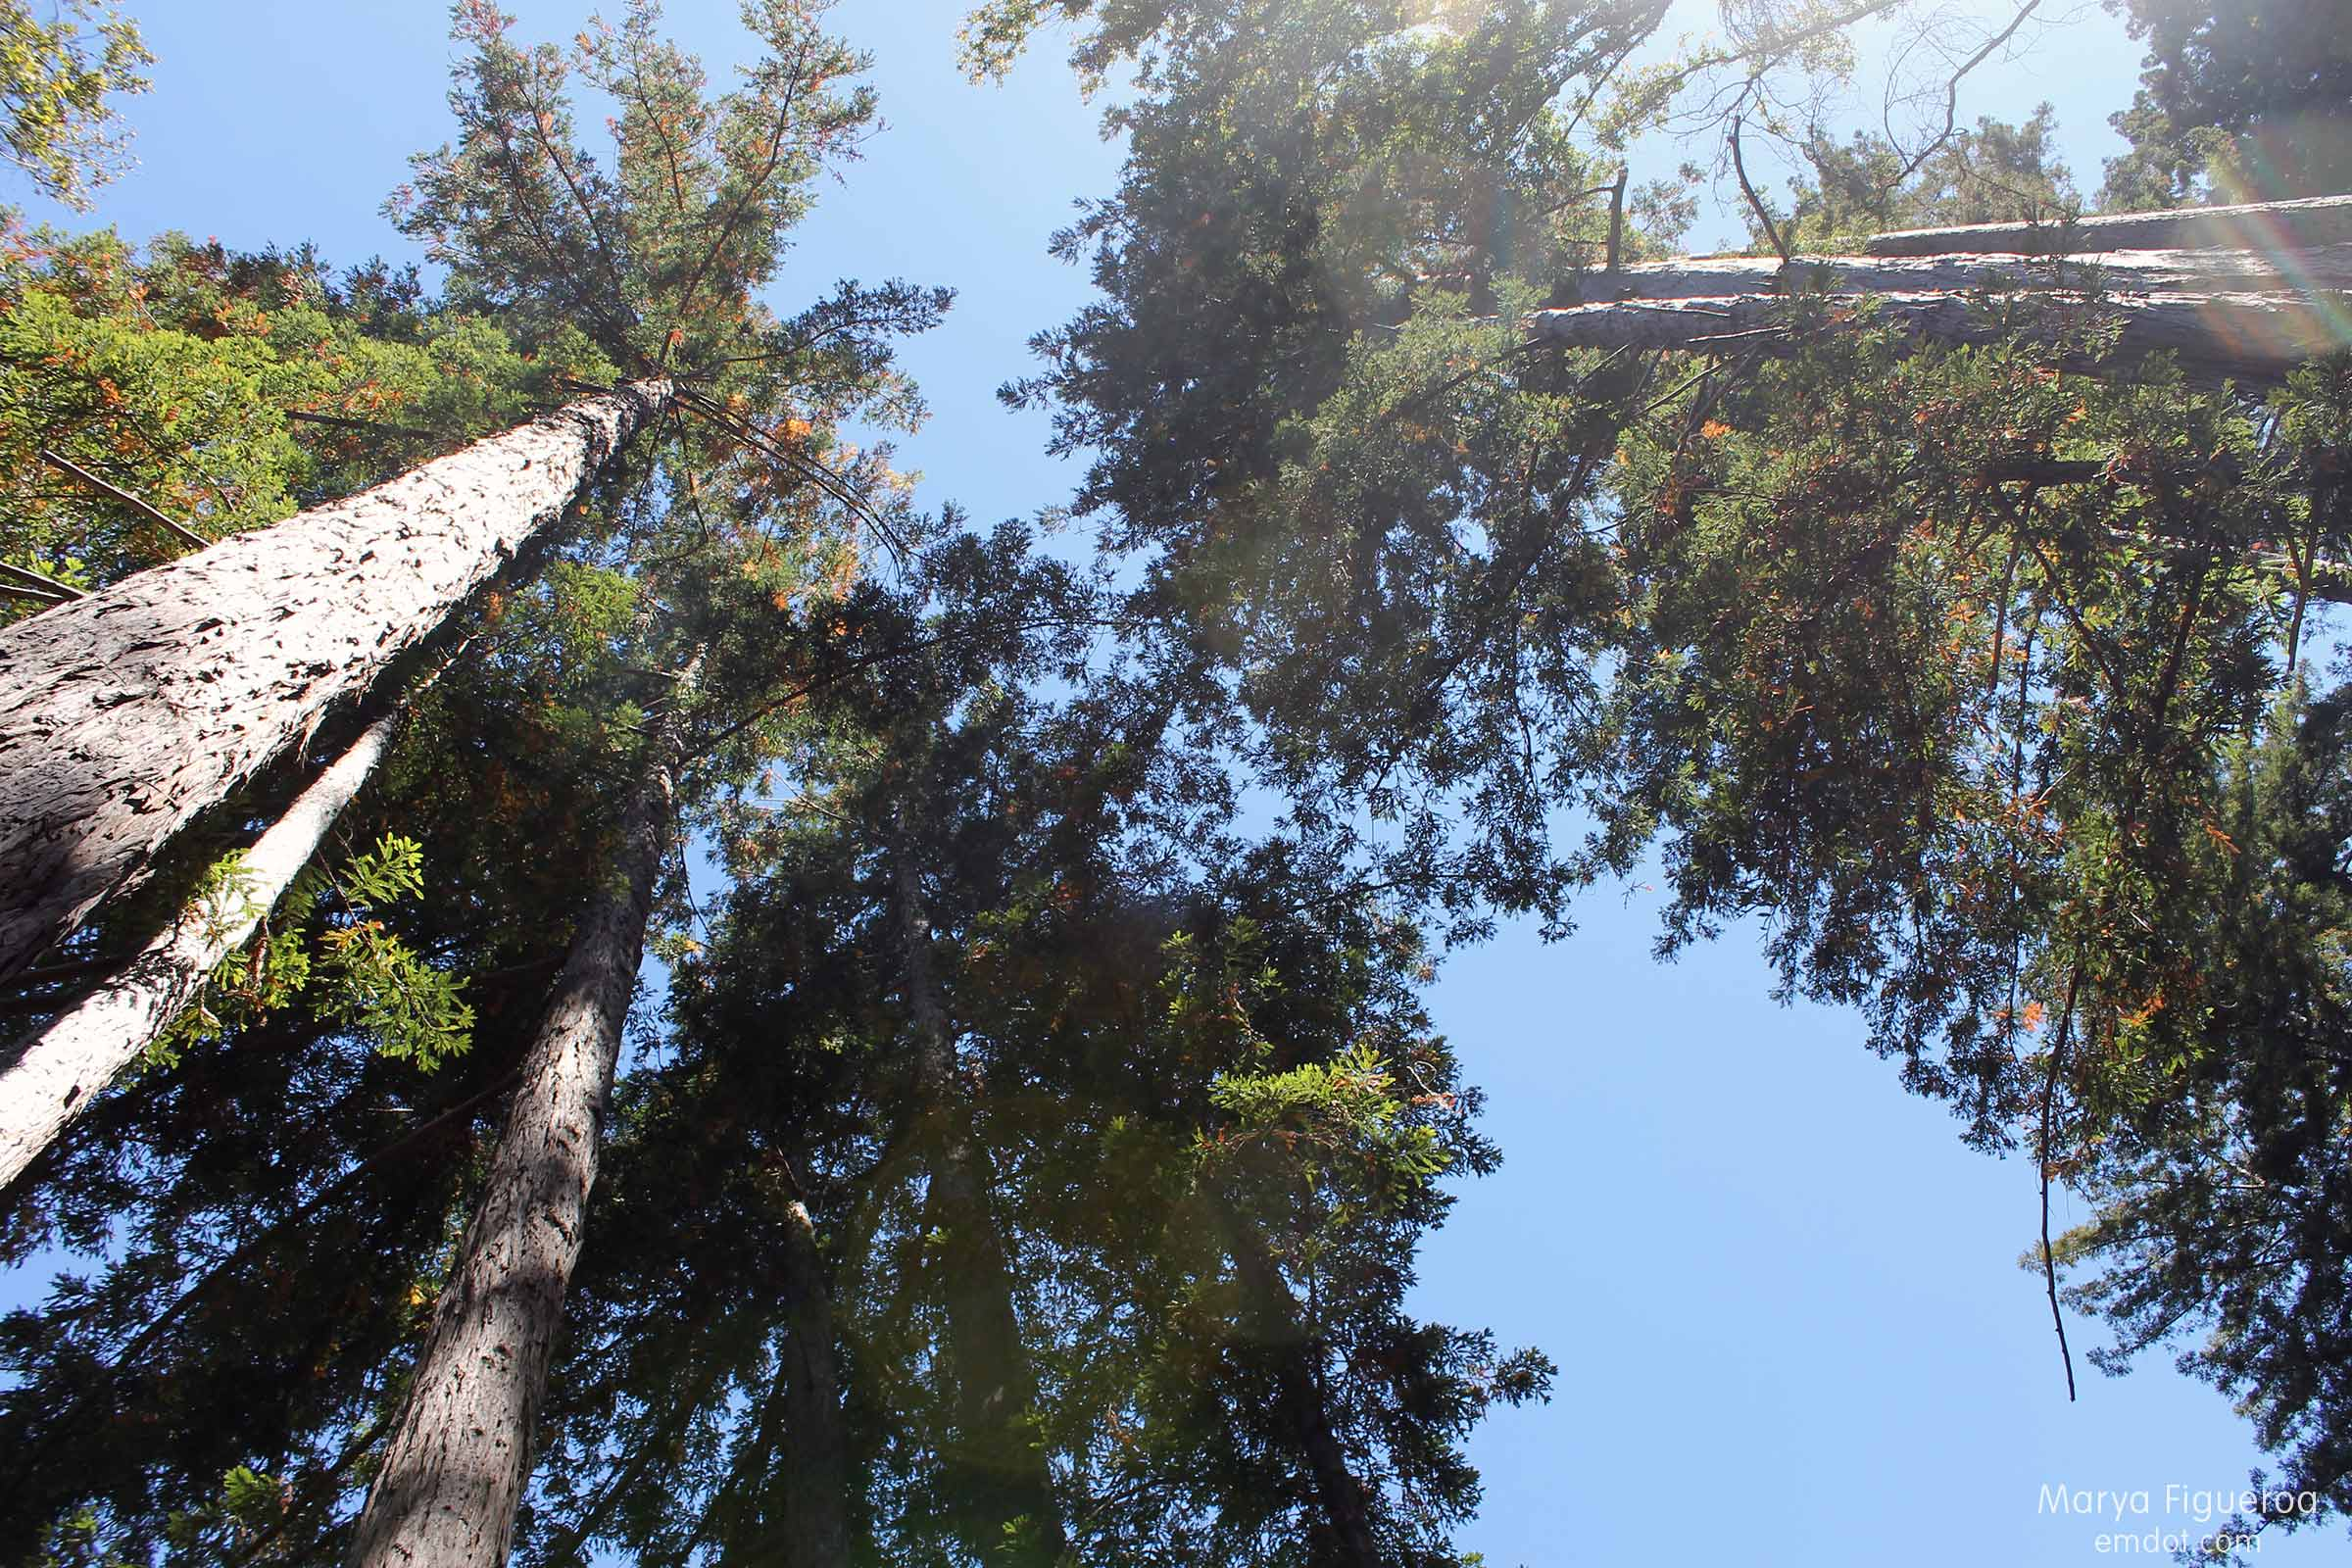 looking up to the tree canopy